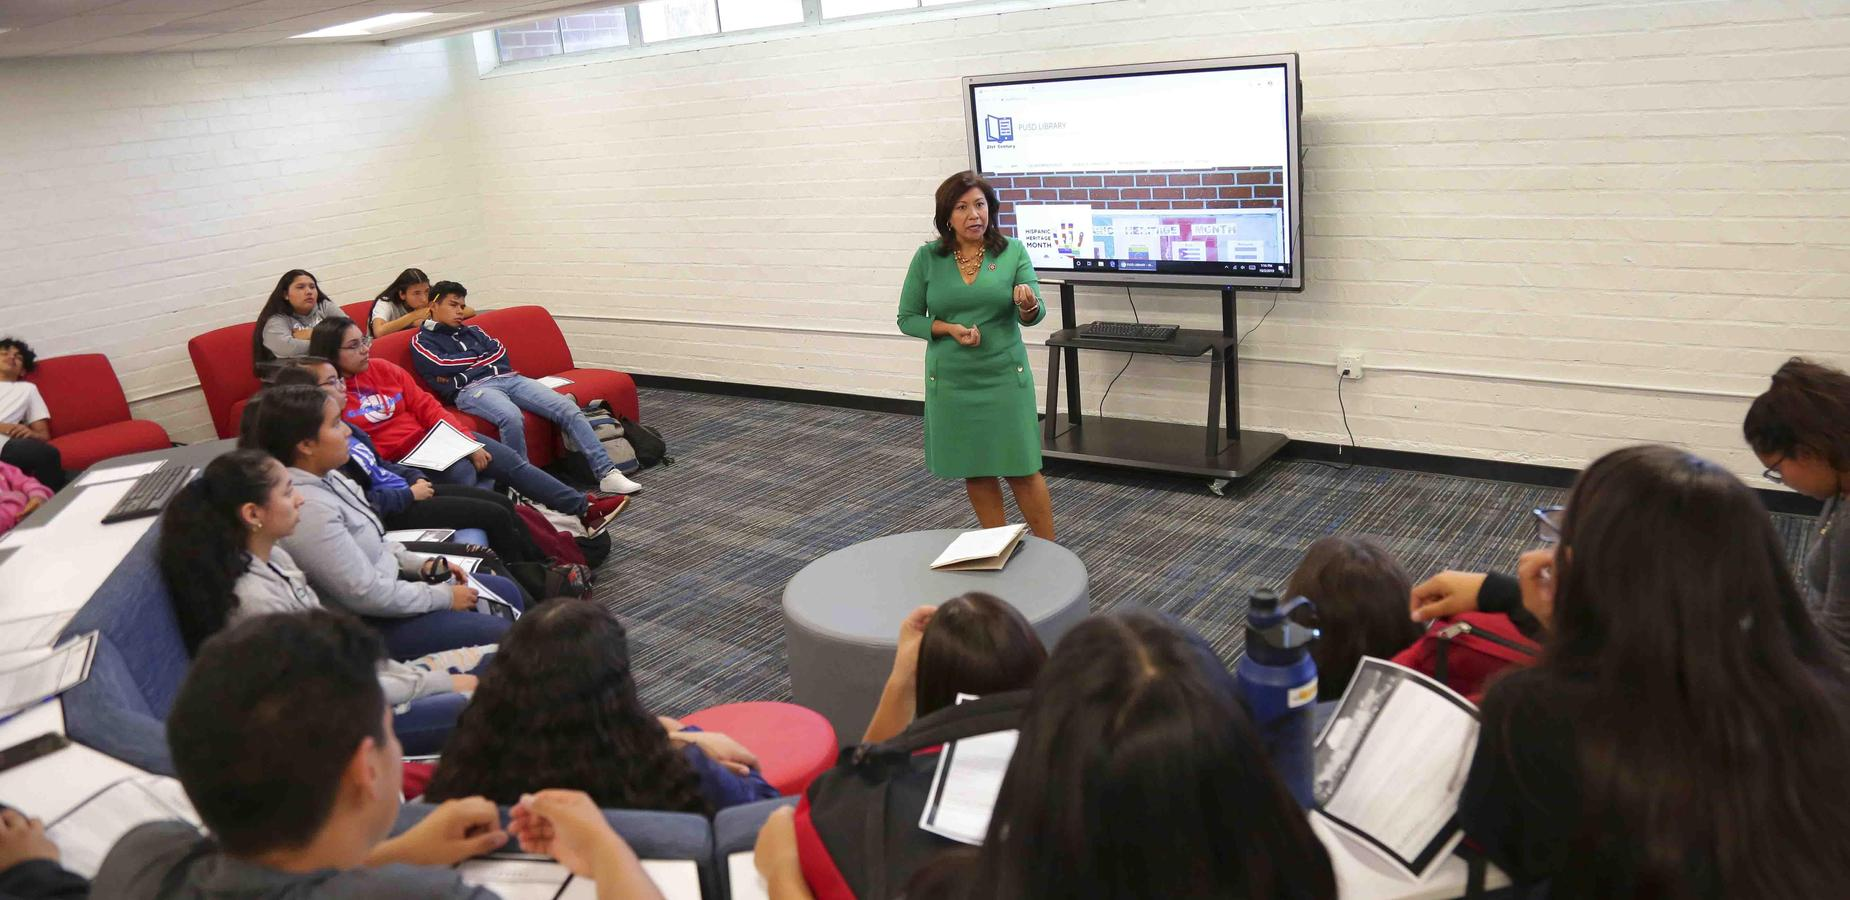 Congresswoman Torres Meets with Ganesha Students - GHS students had an opportunity to ask questions for Congresswoman Torres during her visit at the Ganesha Library #PUSD #Proud2bepusd #GaneshaGIANTS http://edl.io/n1099336